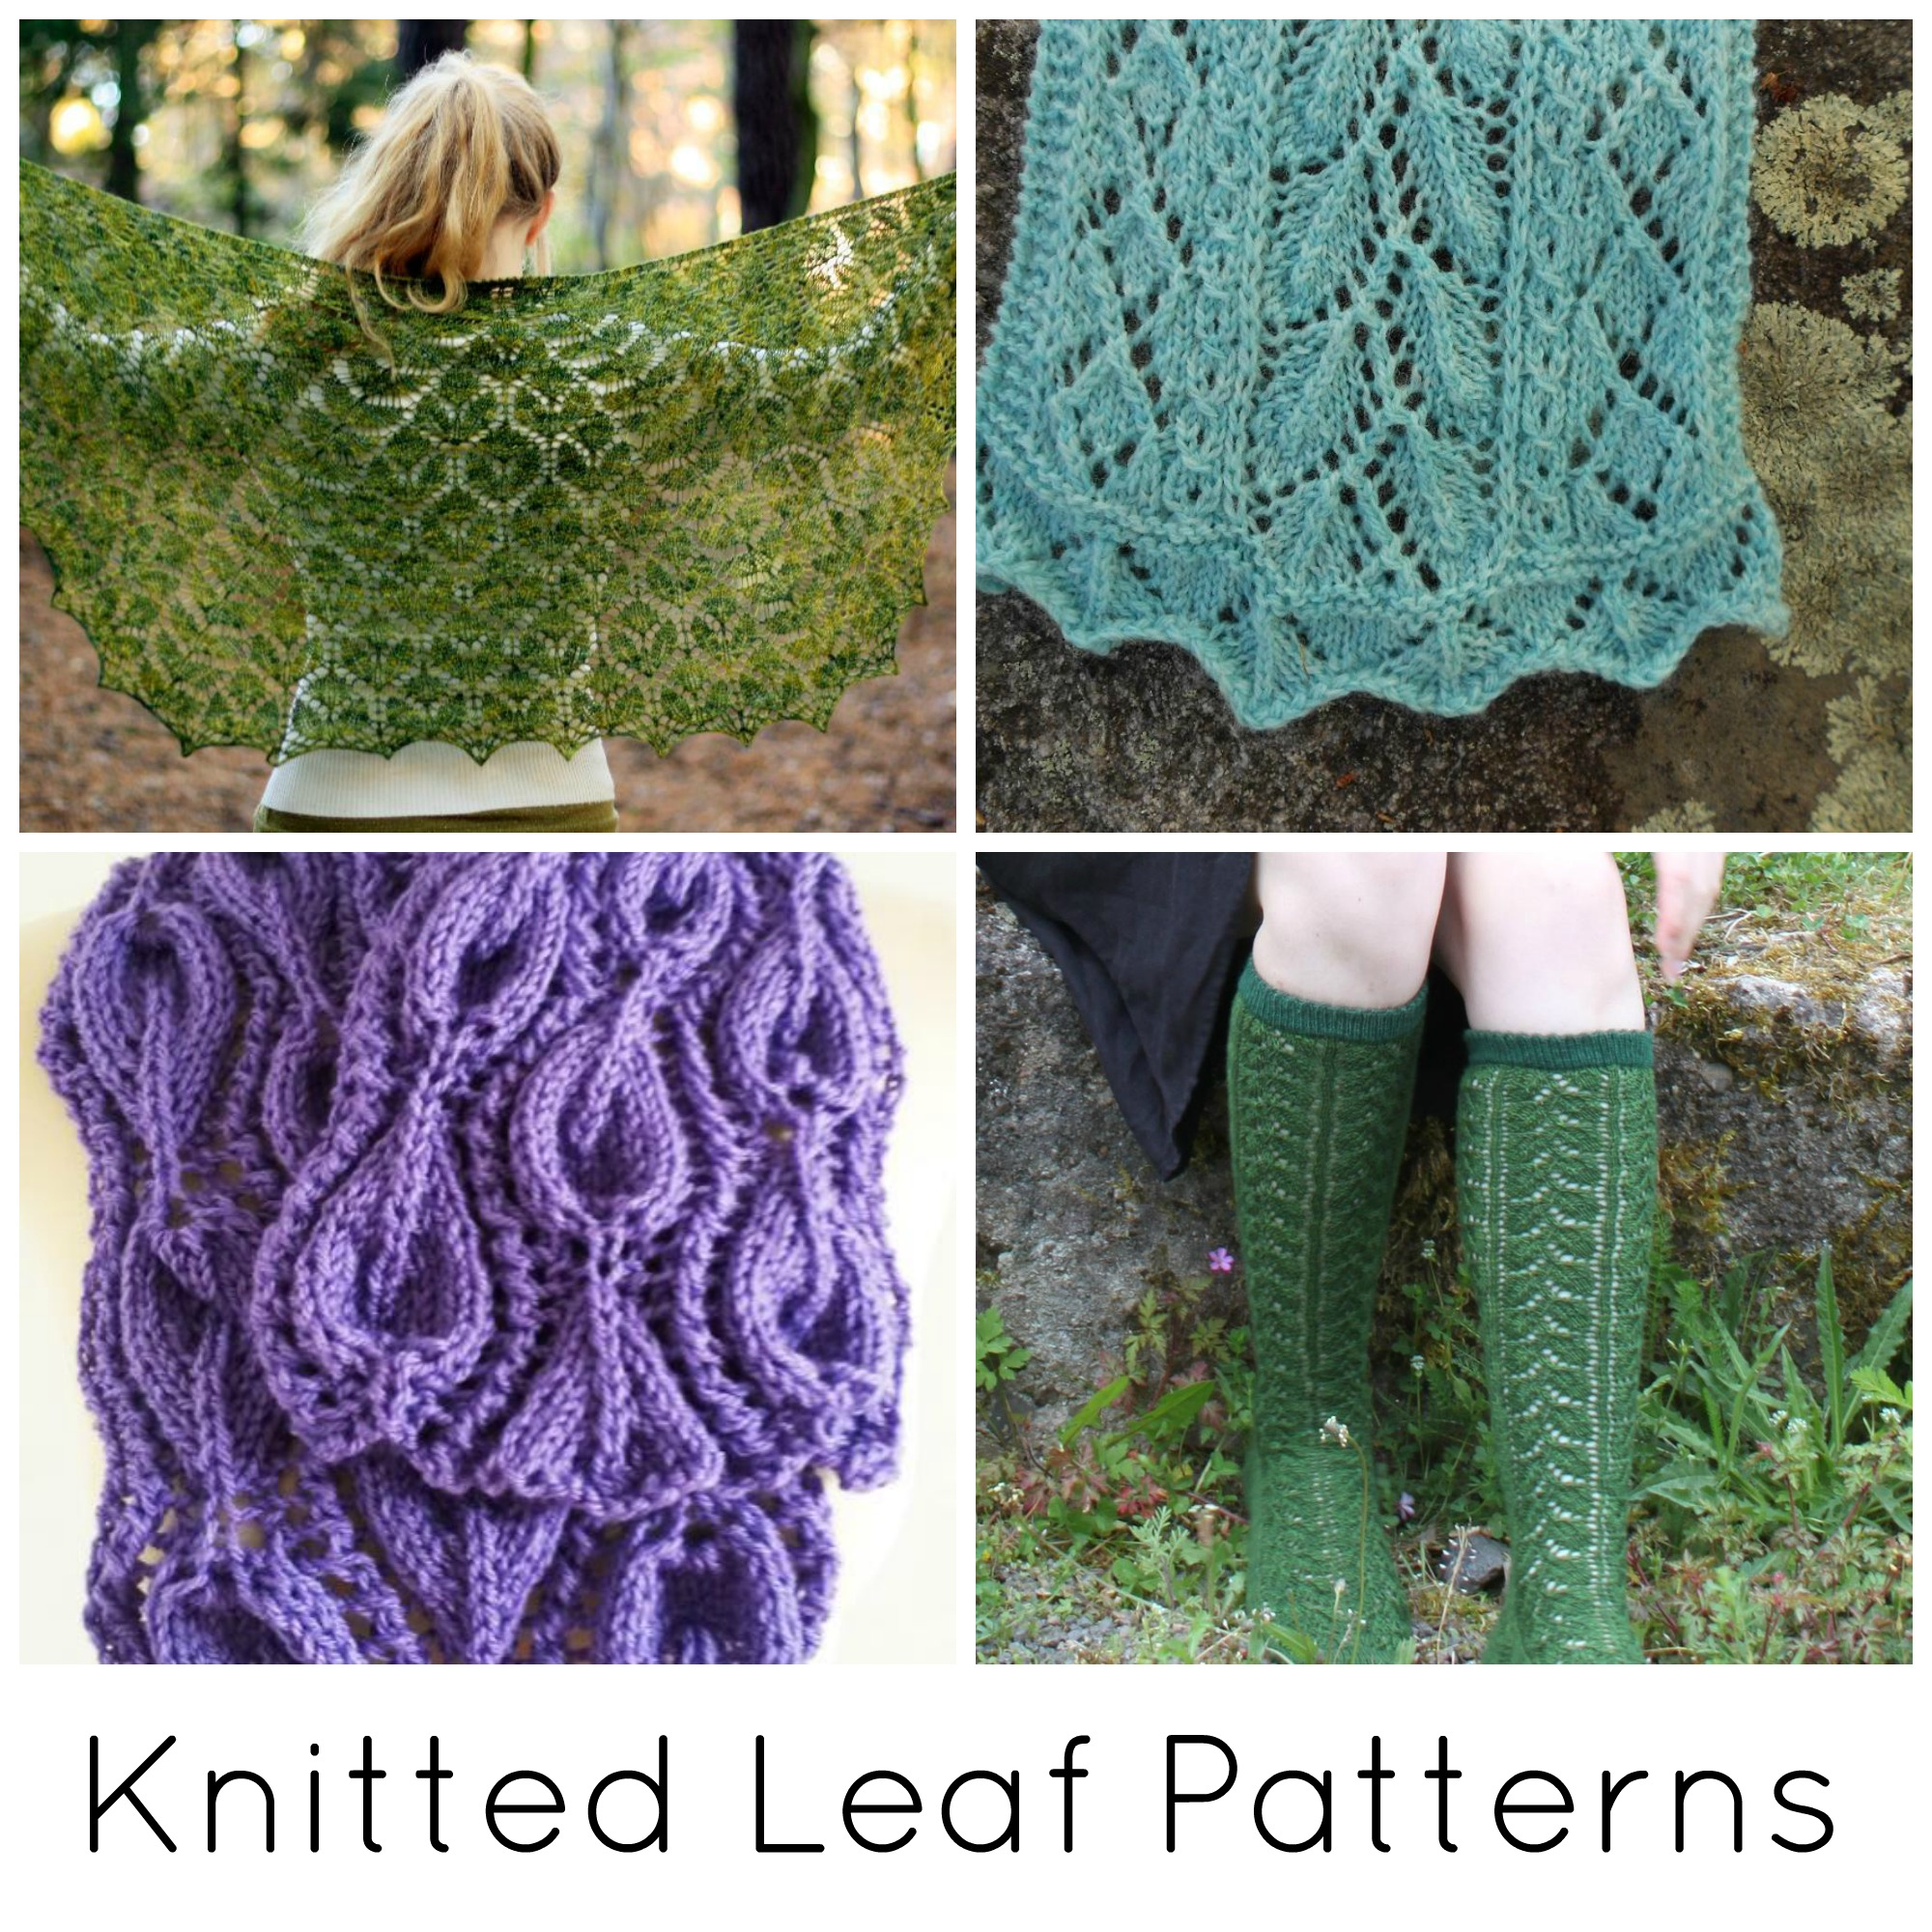 Knitted Leaf Patterns